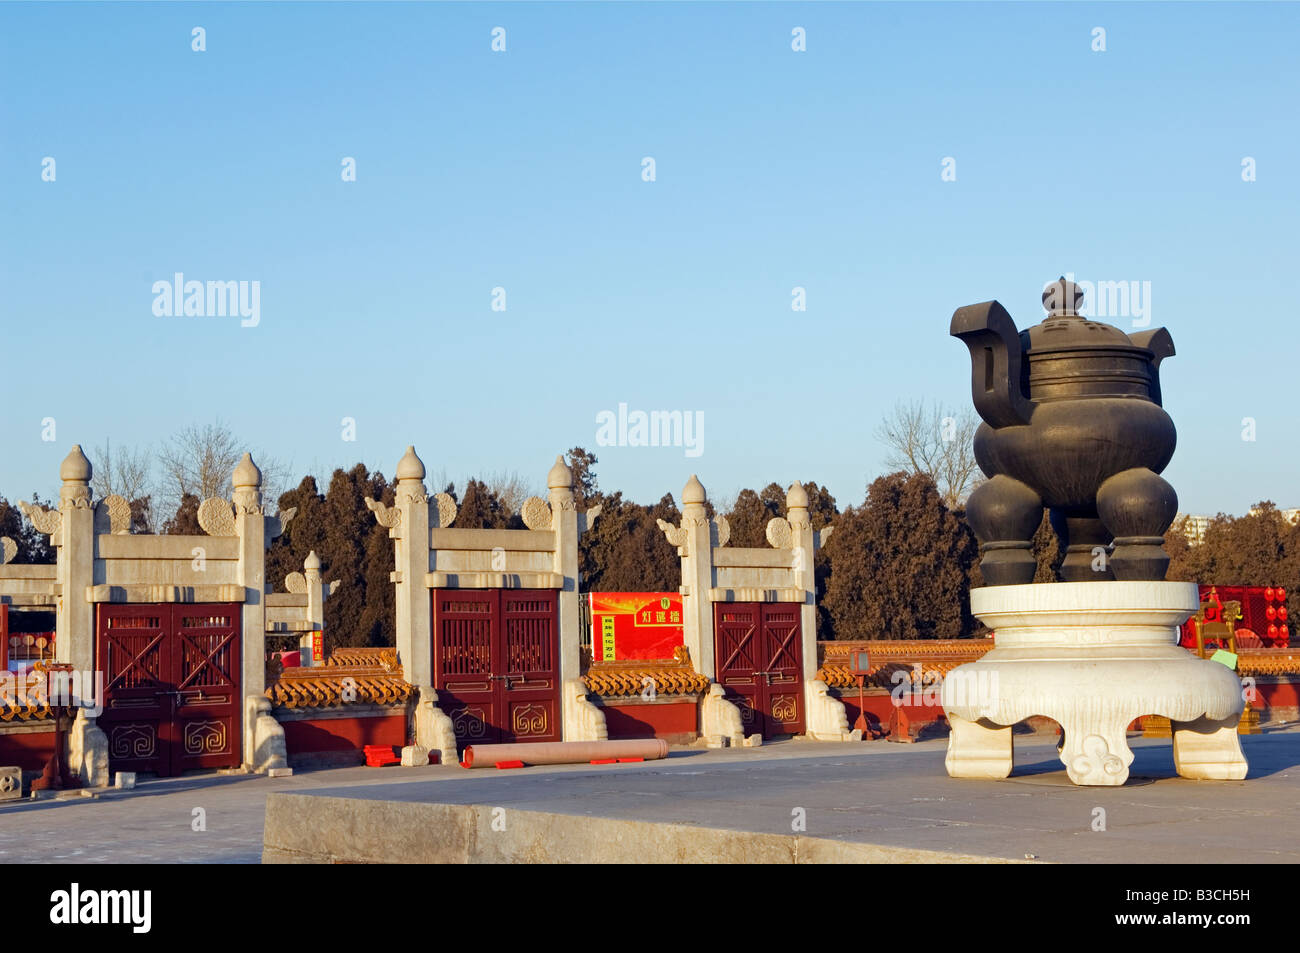 China, Beijing, Ditan Park. Temple gates and monument. Stock Photo